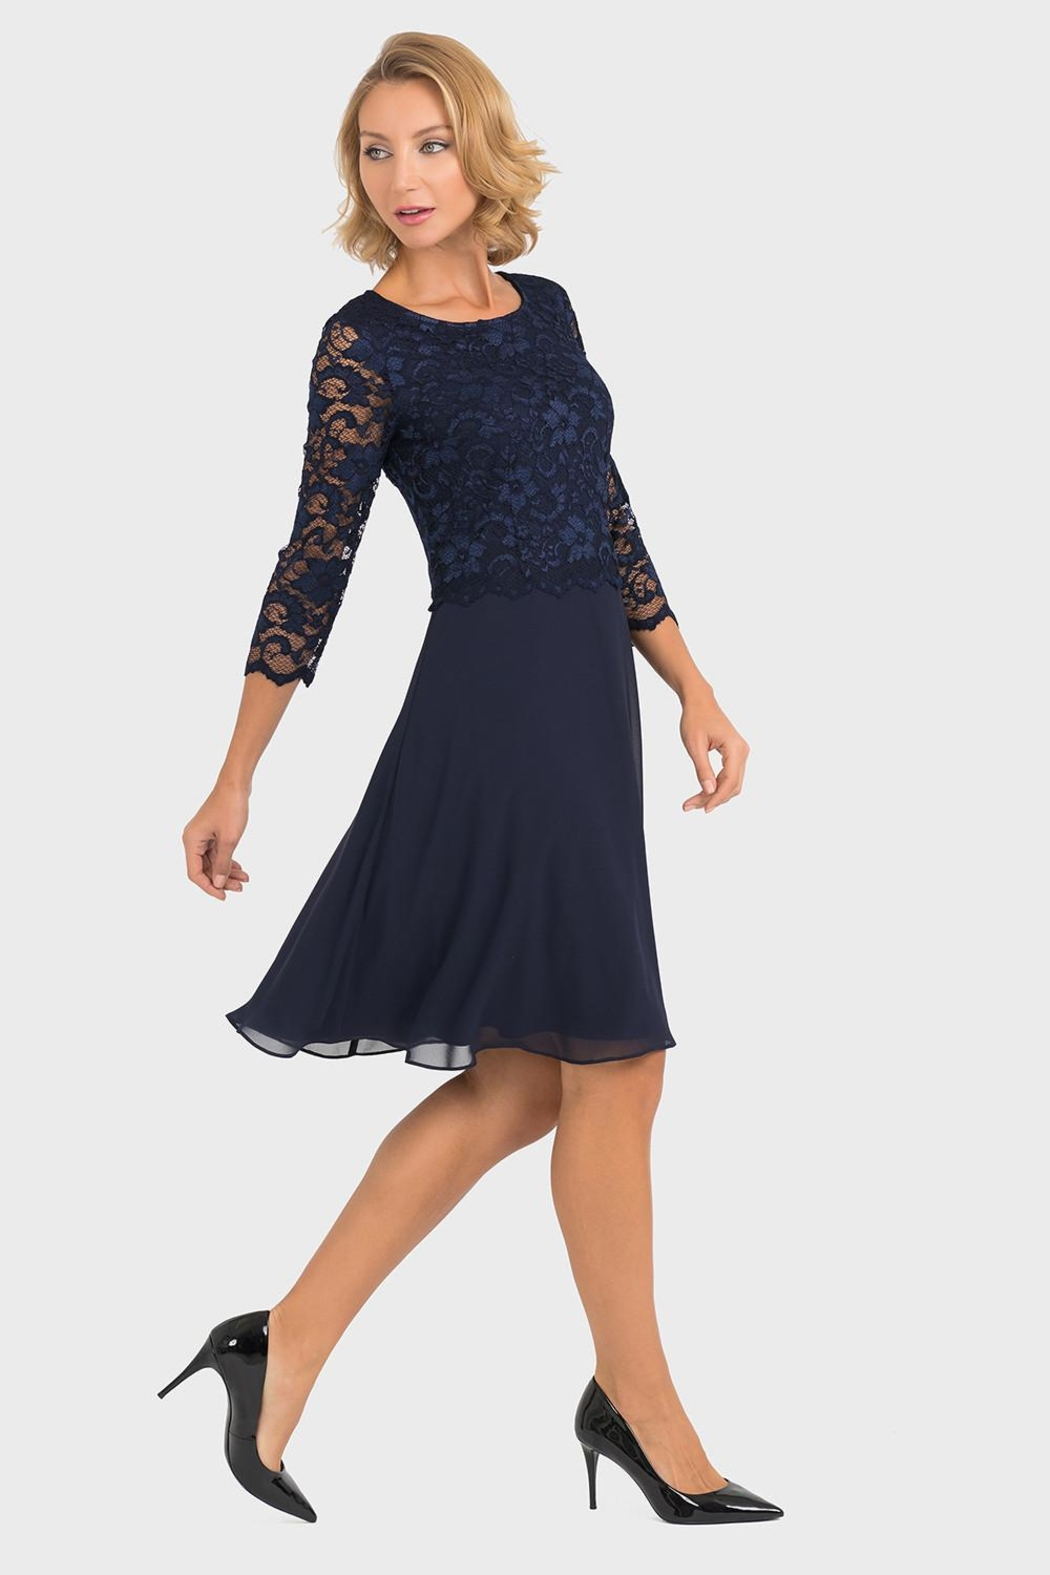 Joseph Ribkoff Marie Lace-Top Dress - Front Full Image